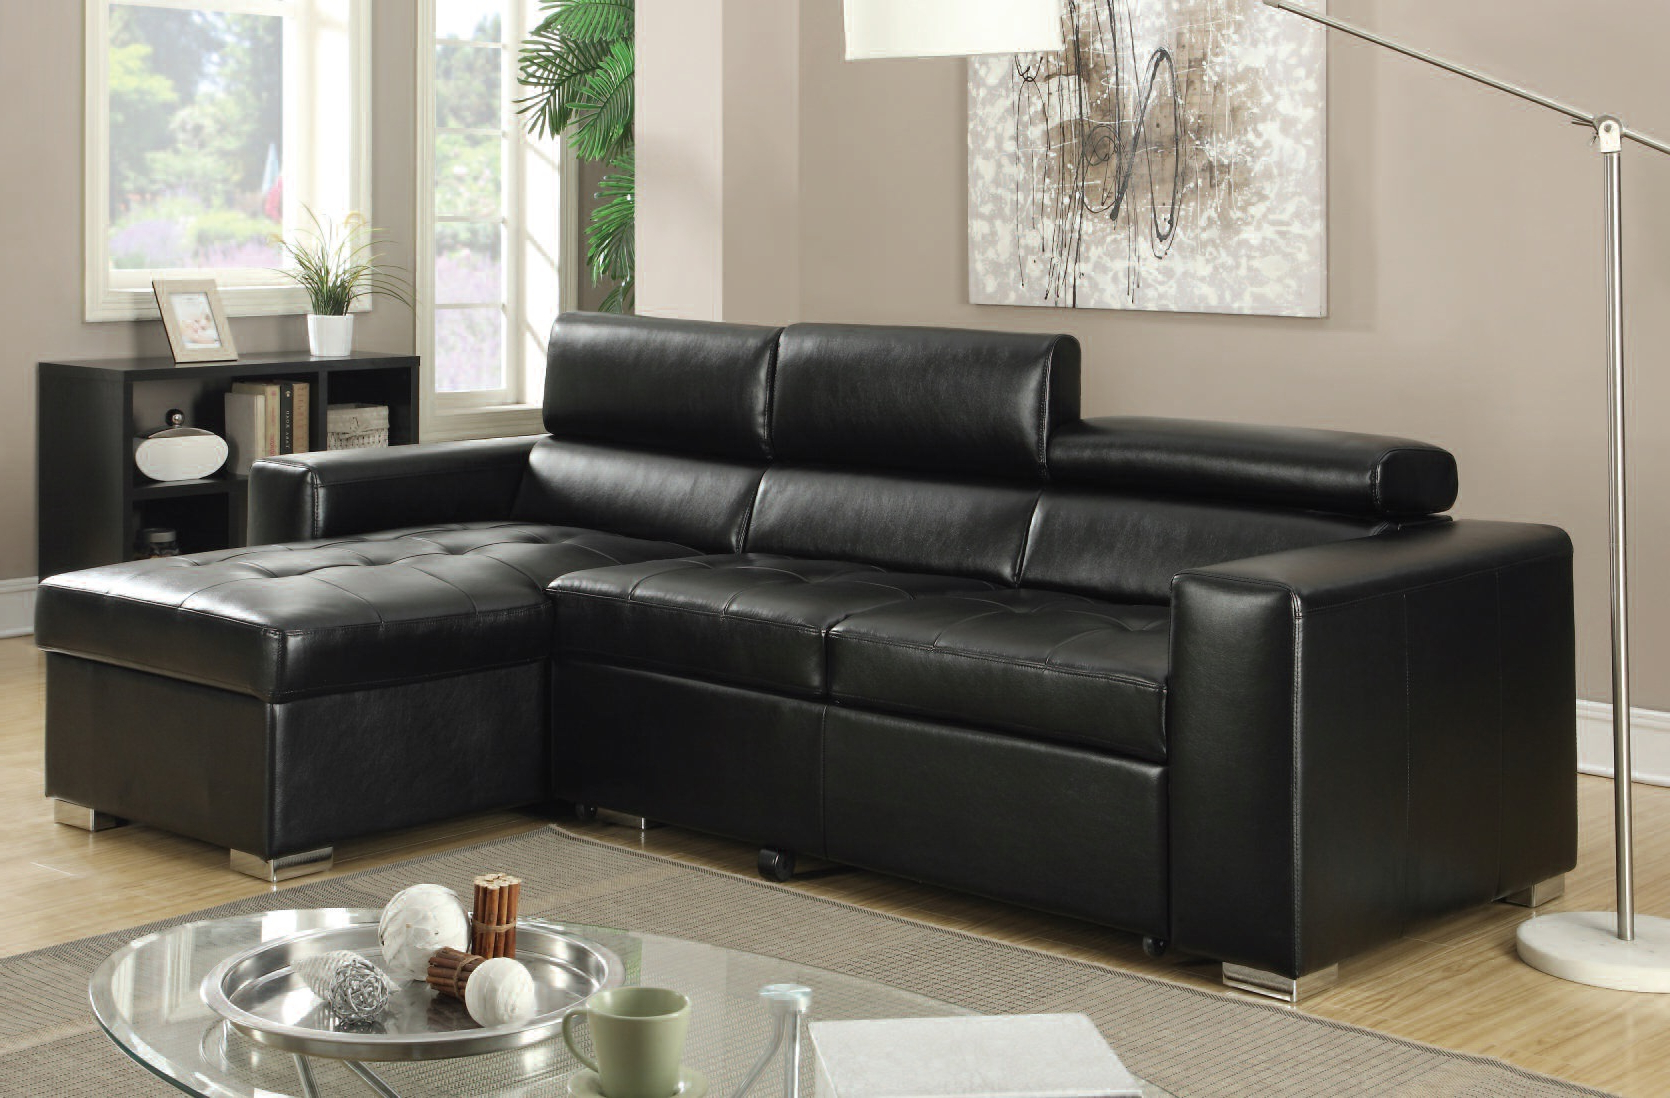 Acme Furniture Aidan Black Bonded Leather Sectional Sofa (View 1 of 20)